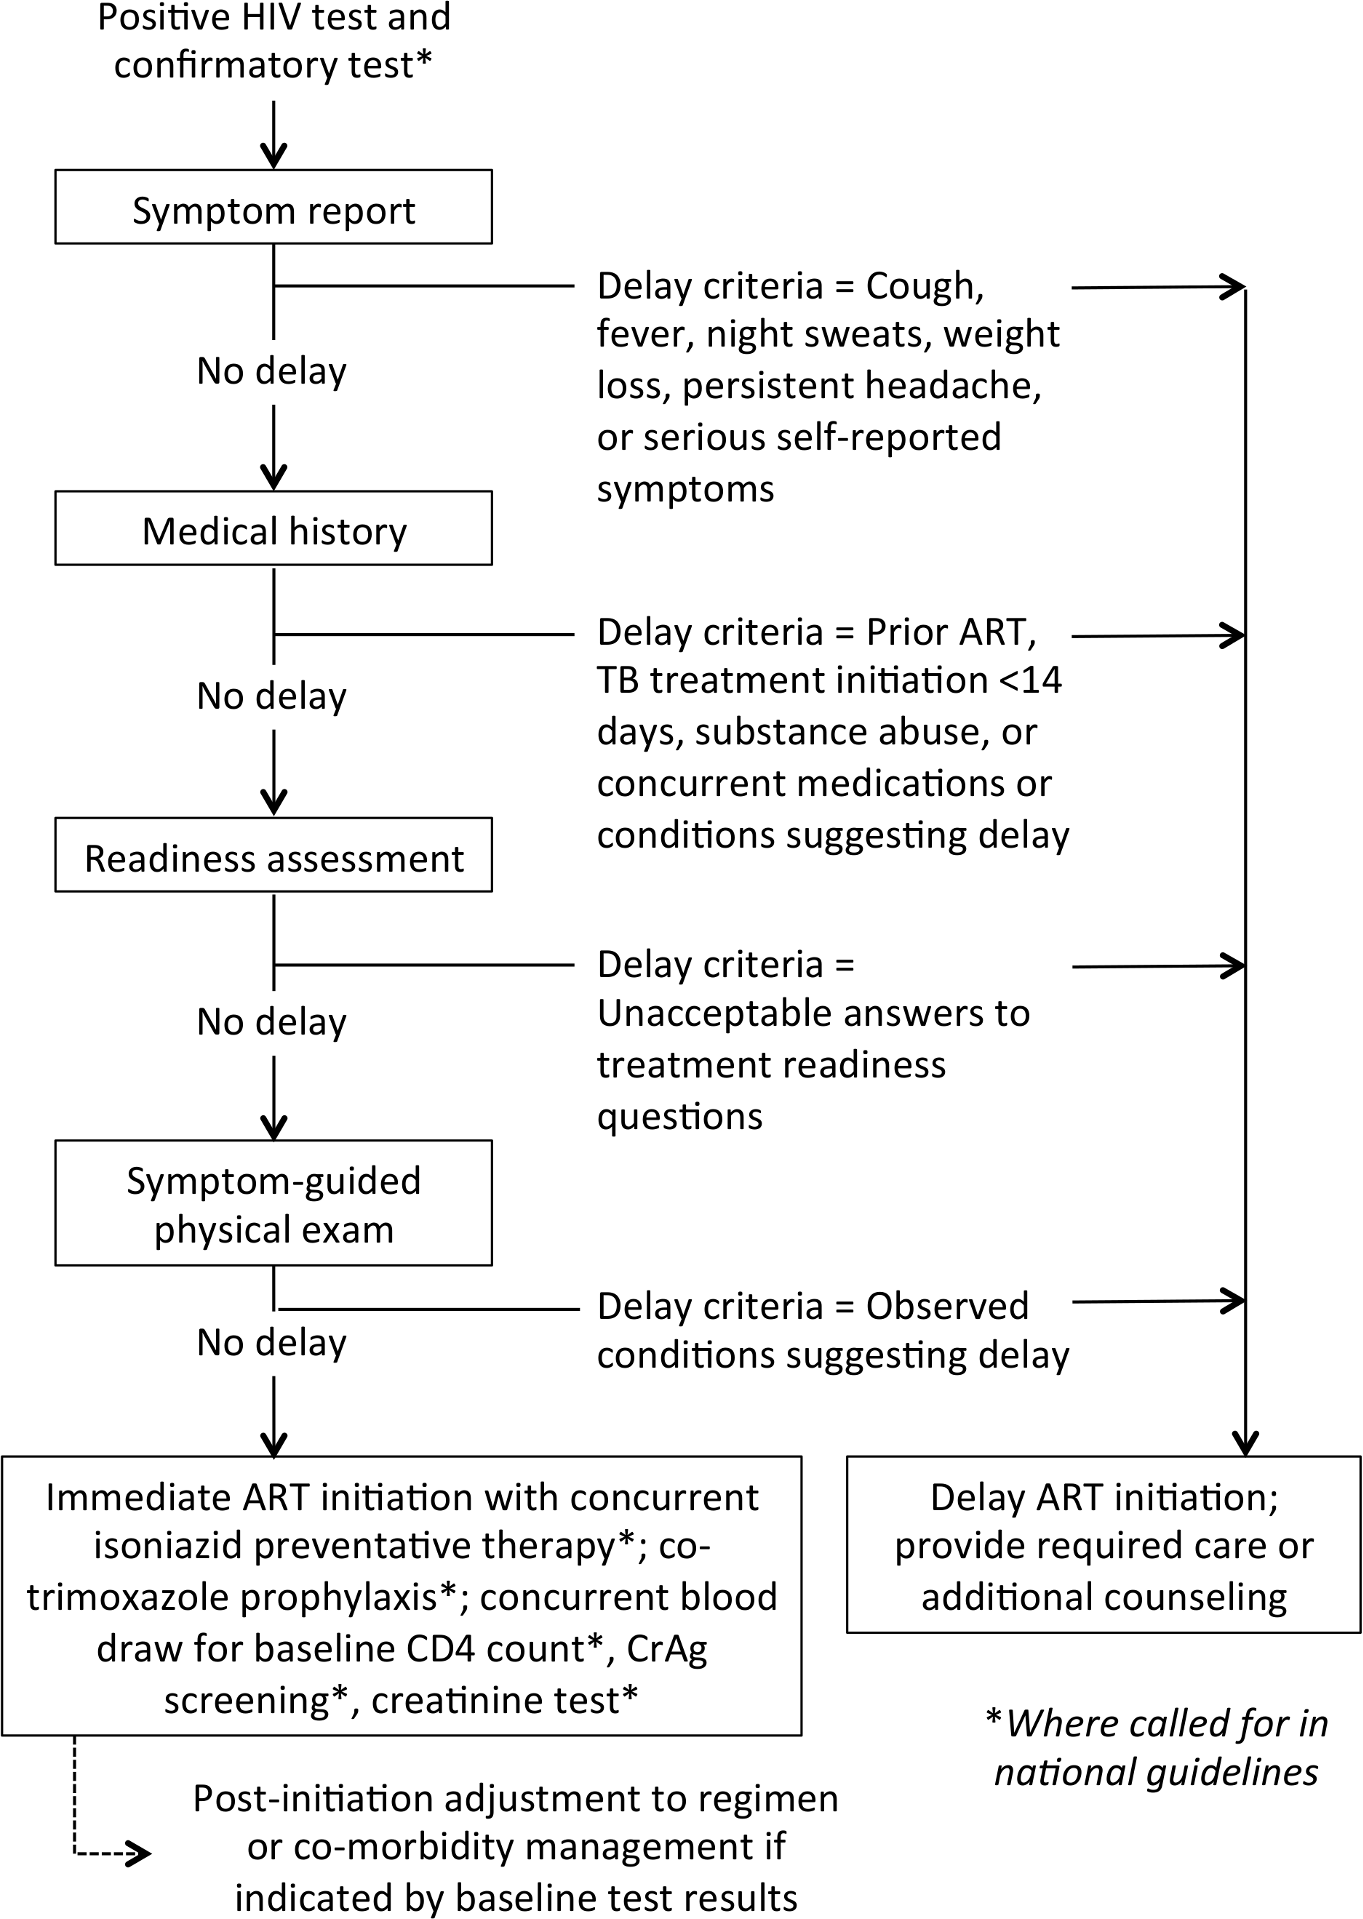 Determining clinical eligibility for immediate ART initiation: proposed algorithm for evaluation in the research agenda.